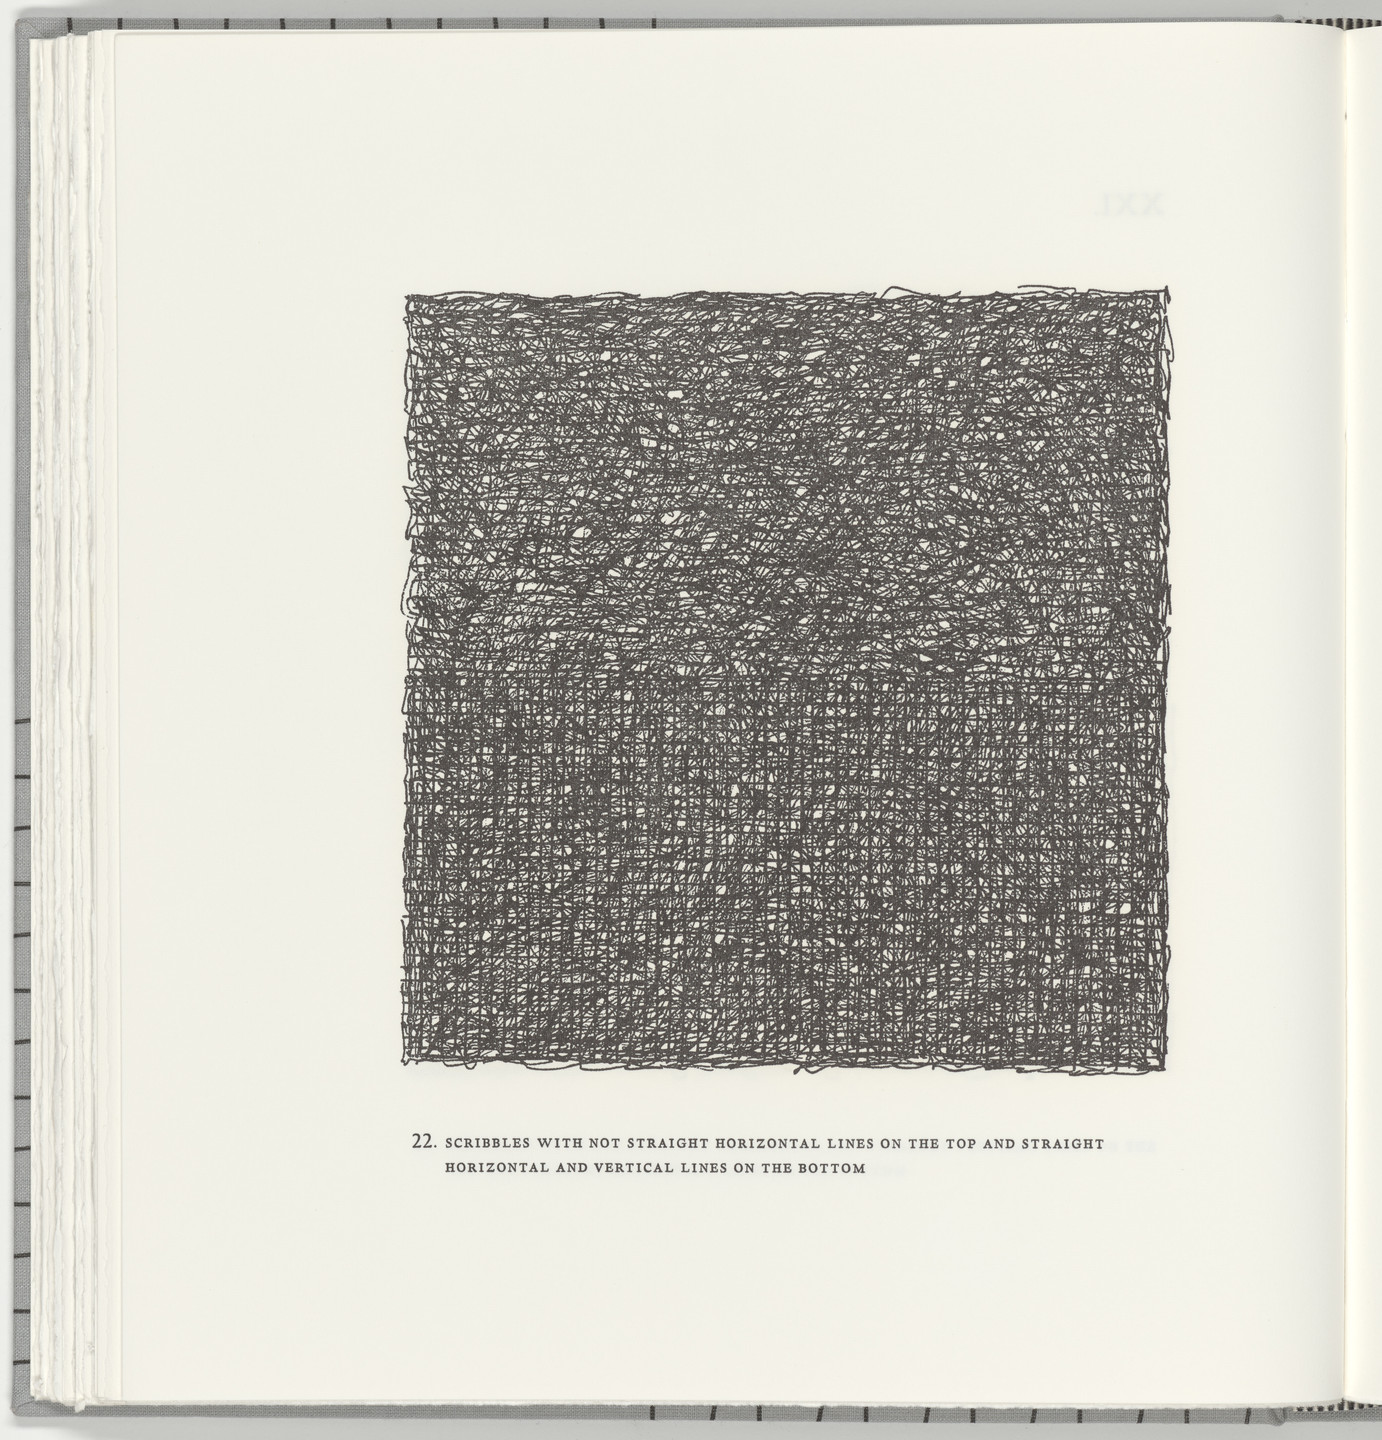 Sol LeWitt. Scribbles with Not Straight Horizontal Lines on the Top and Straight Horizontal and Vertical Lines on the Bottom (plate 22) from Squarings. 2003